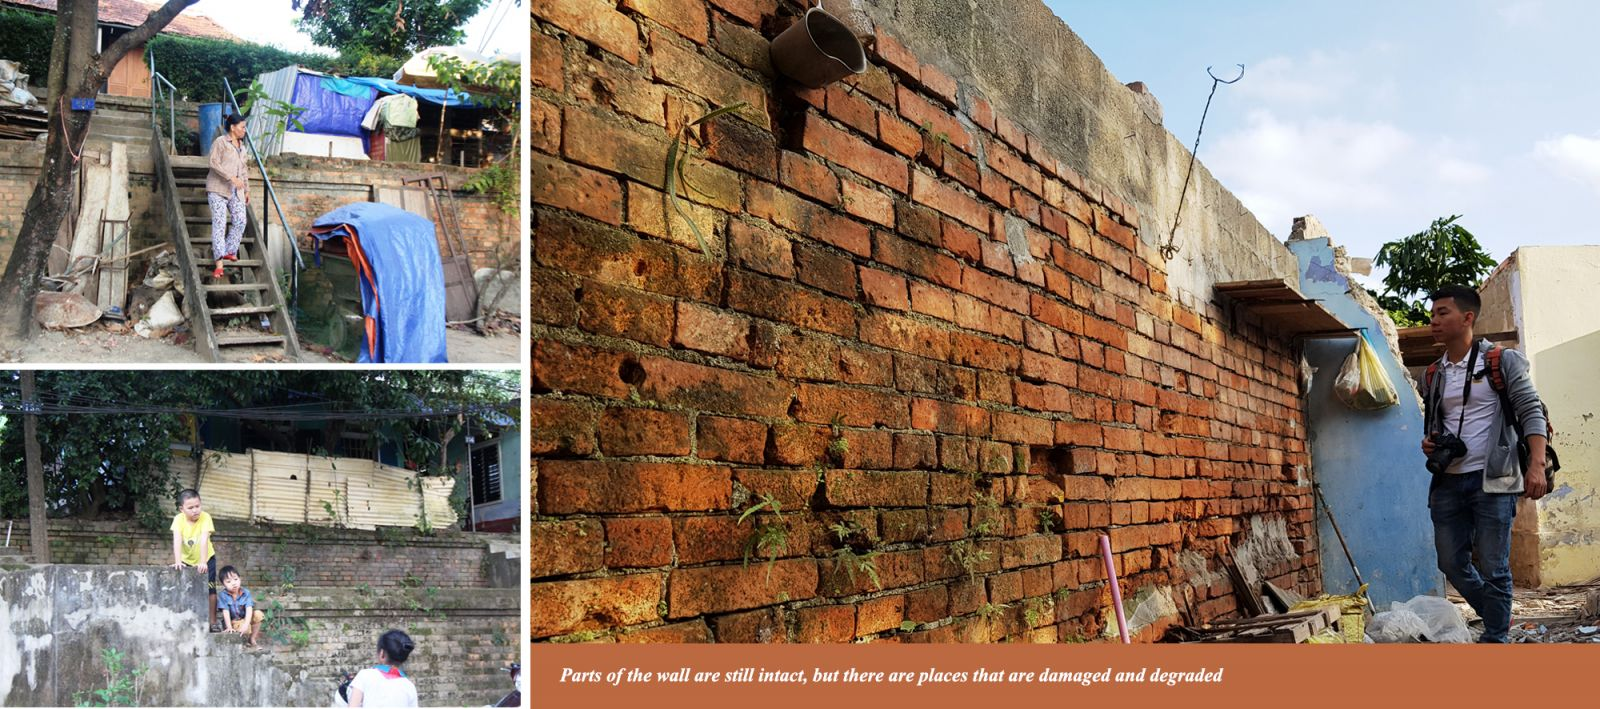 Relocation of households in Hue Citadel Zone 1: History and Sentiment - Part 2: Giving back Thuong Thanh its heritage role